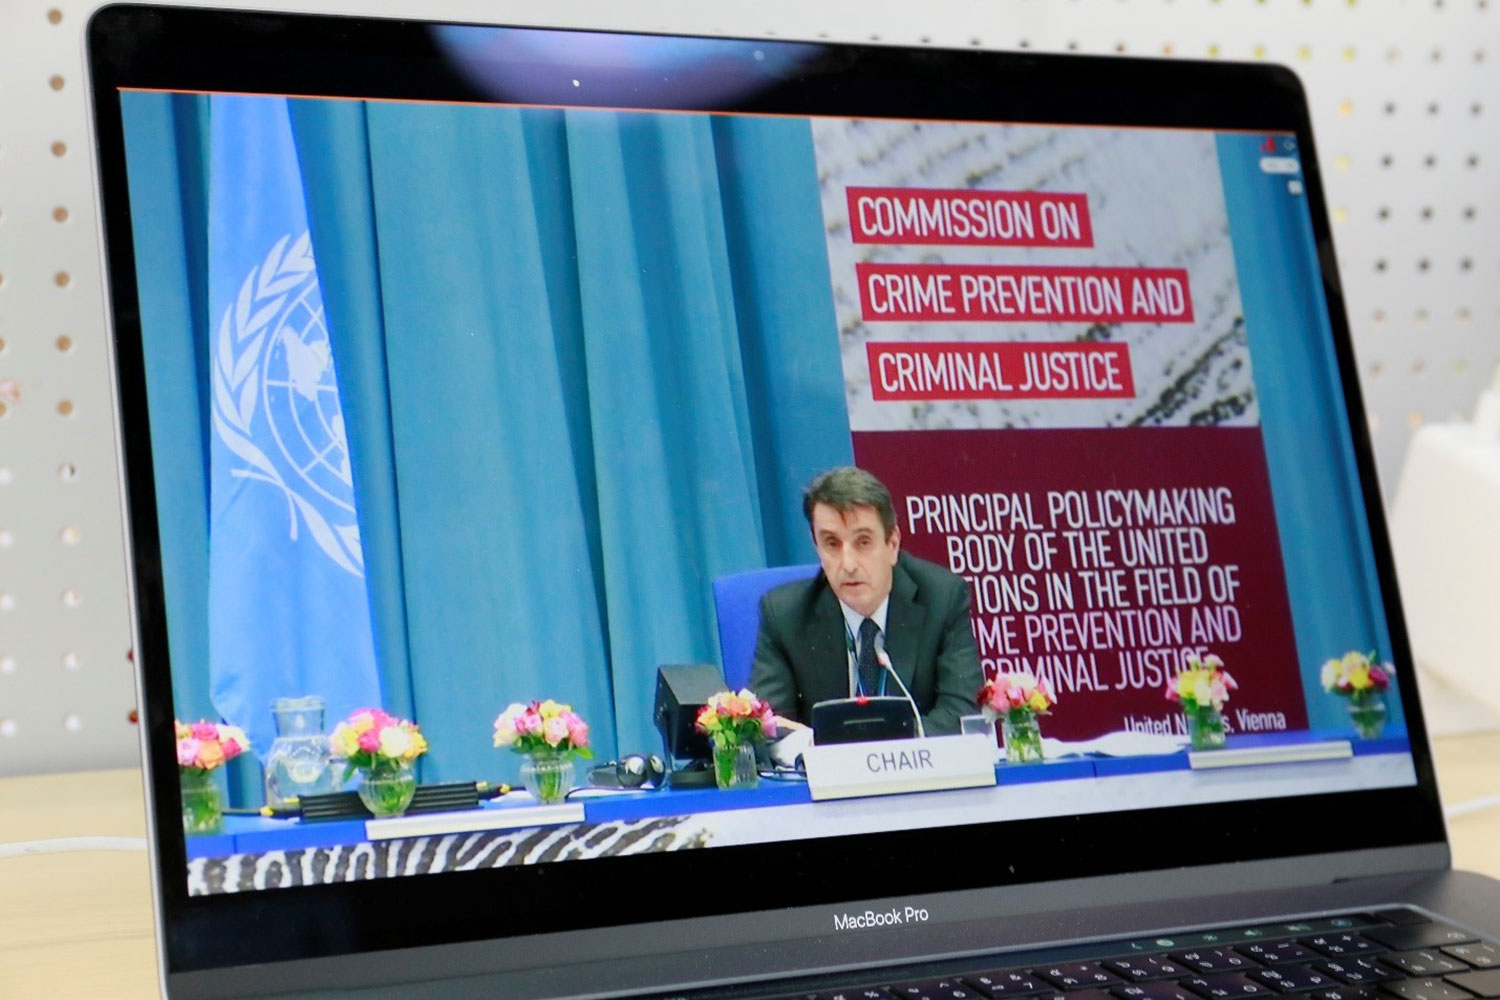 """Thailand pushes for """"Strengthening of Criminal Justice Systems"""" in response to COVID-19 at UN Forum"""